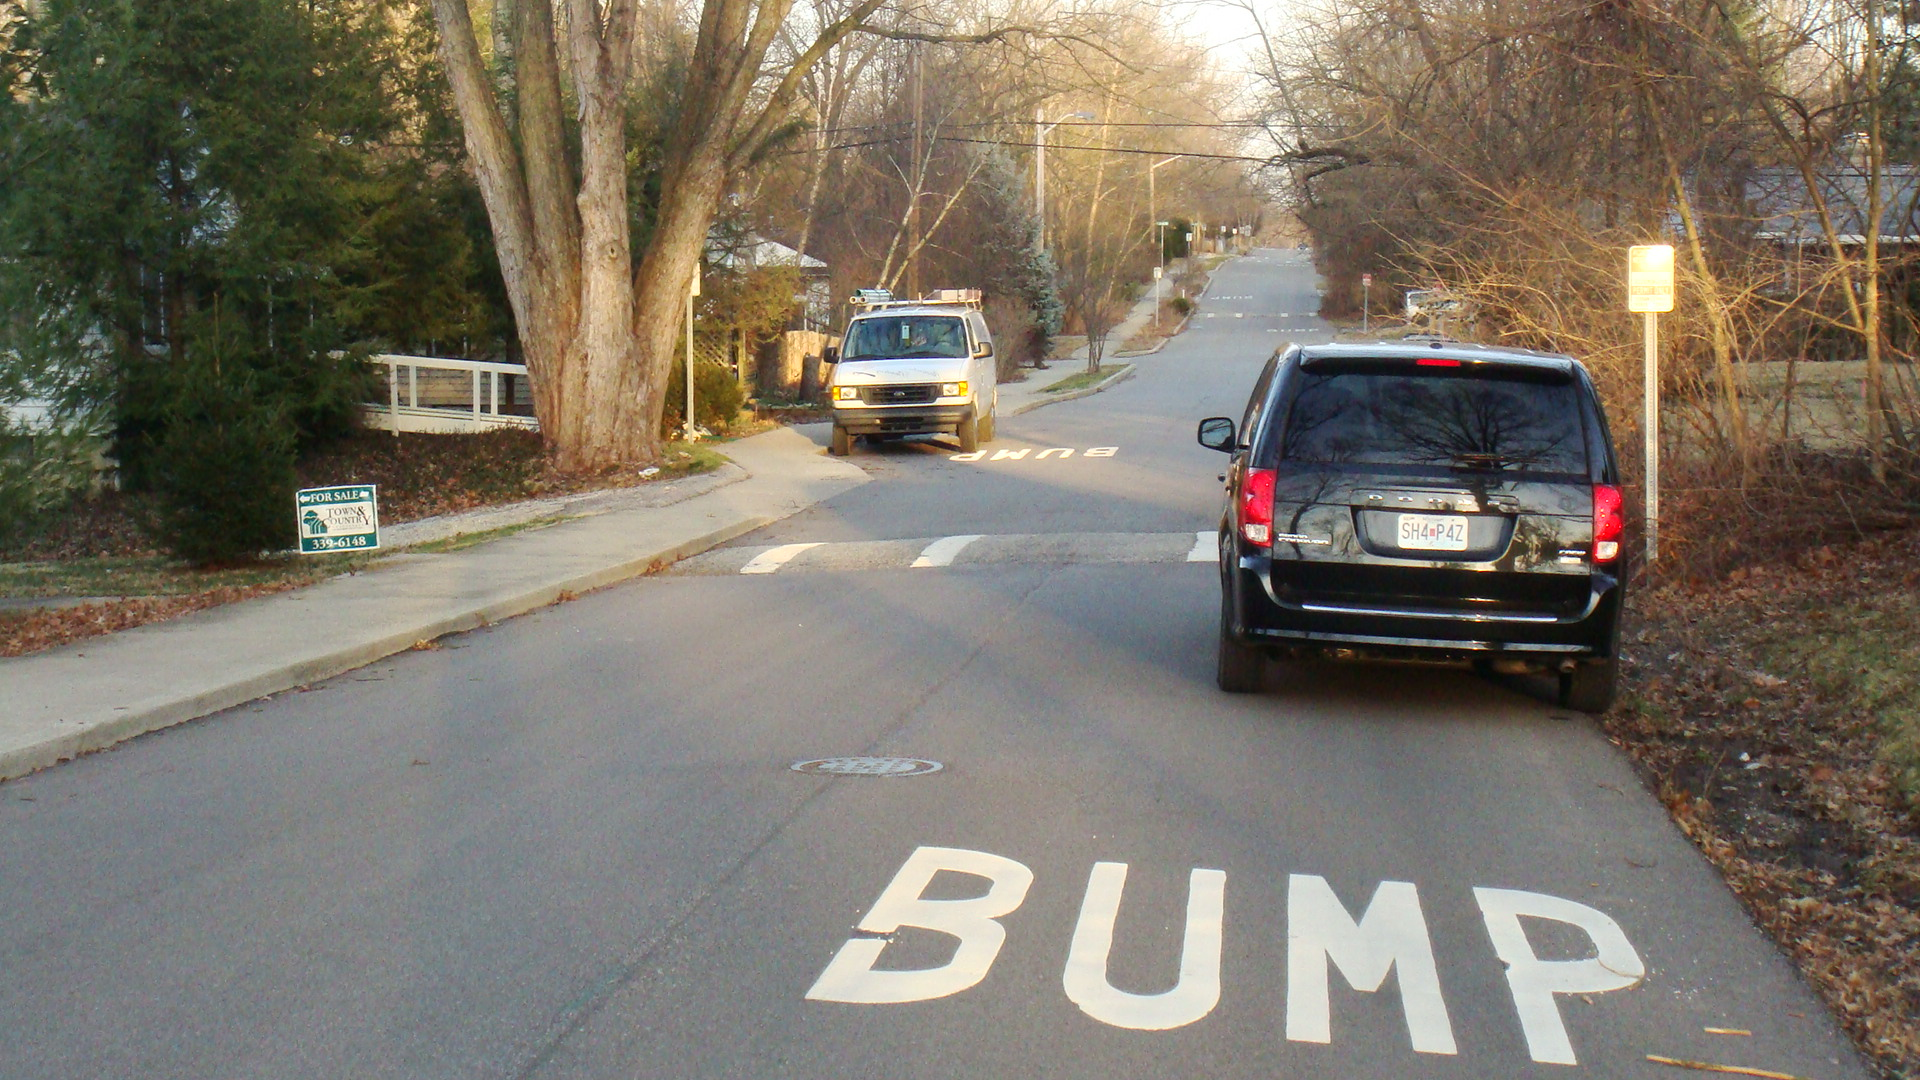 Speed bump - Wikipedia